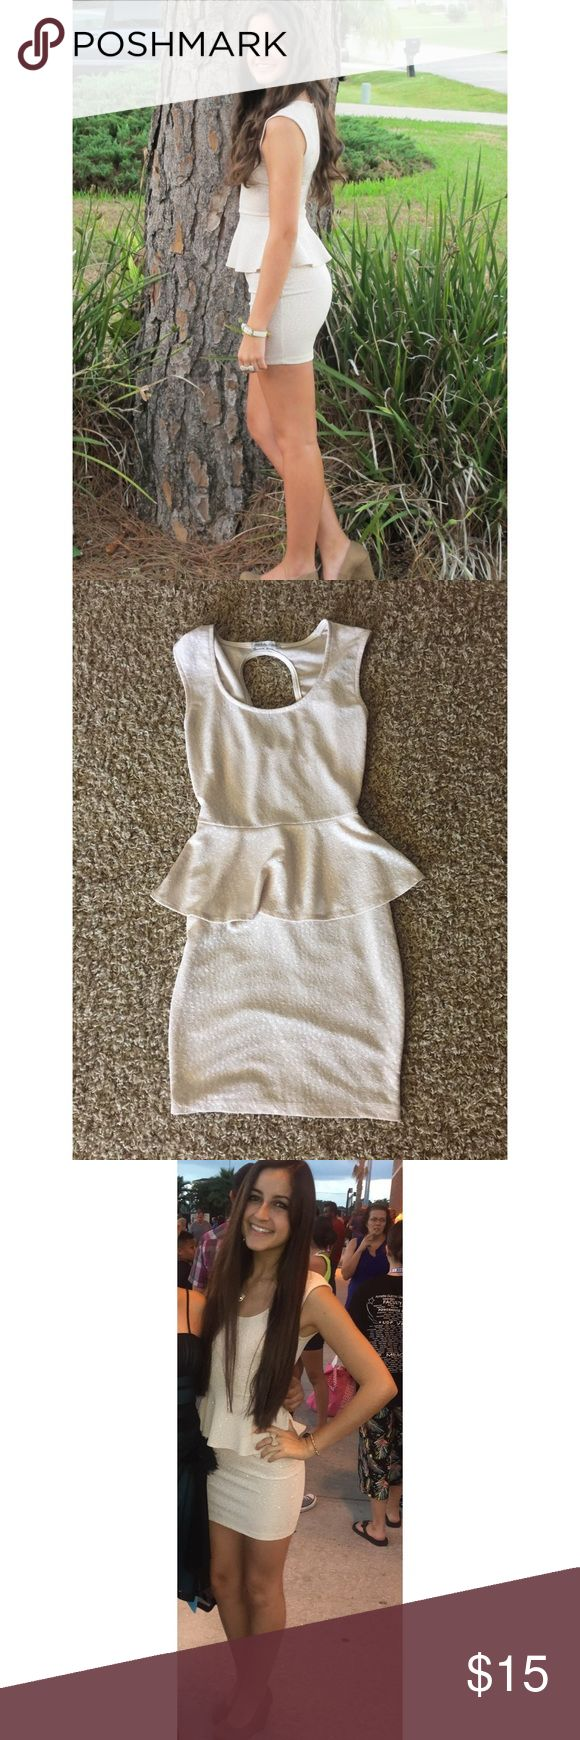 SPARKLY Cream Skin Tight Dress Skin tight dress. Glitter does not fall off or wash out. True to size. Charlotte Russe. X-small. Charlotte Russe Dresses Mini